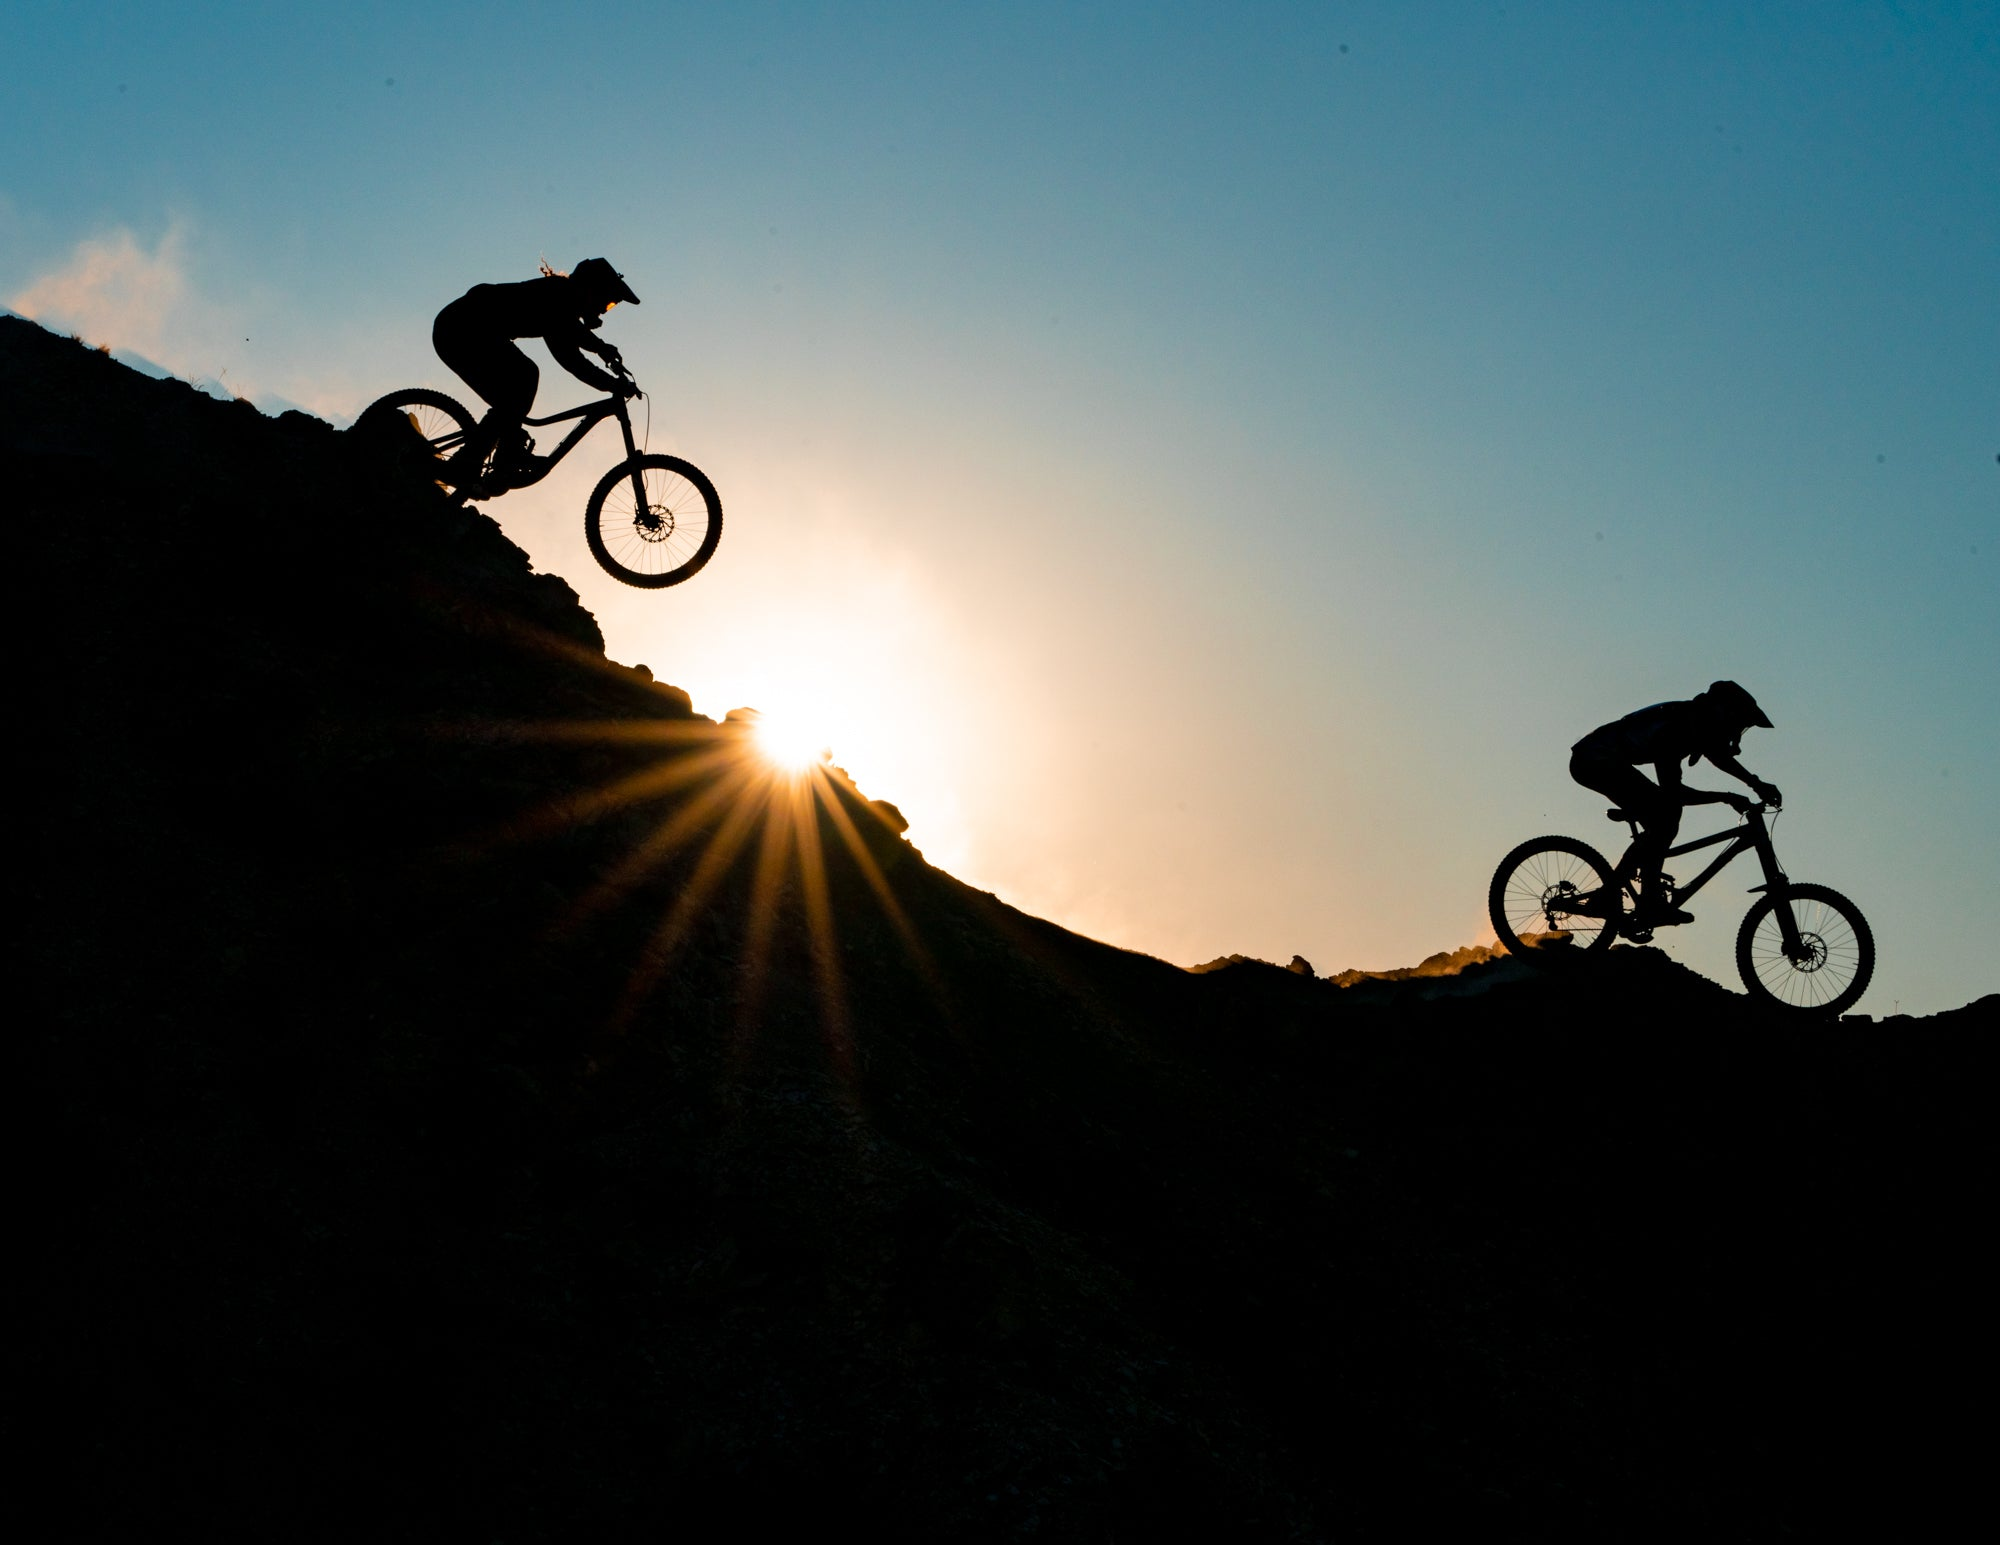 Two Mountain Bikers Riding Down a Mountain Spine at Sunset